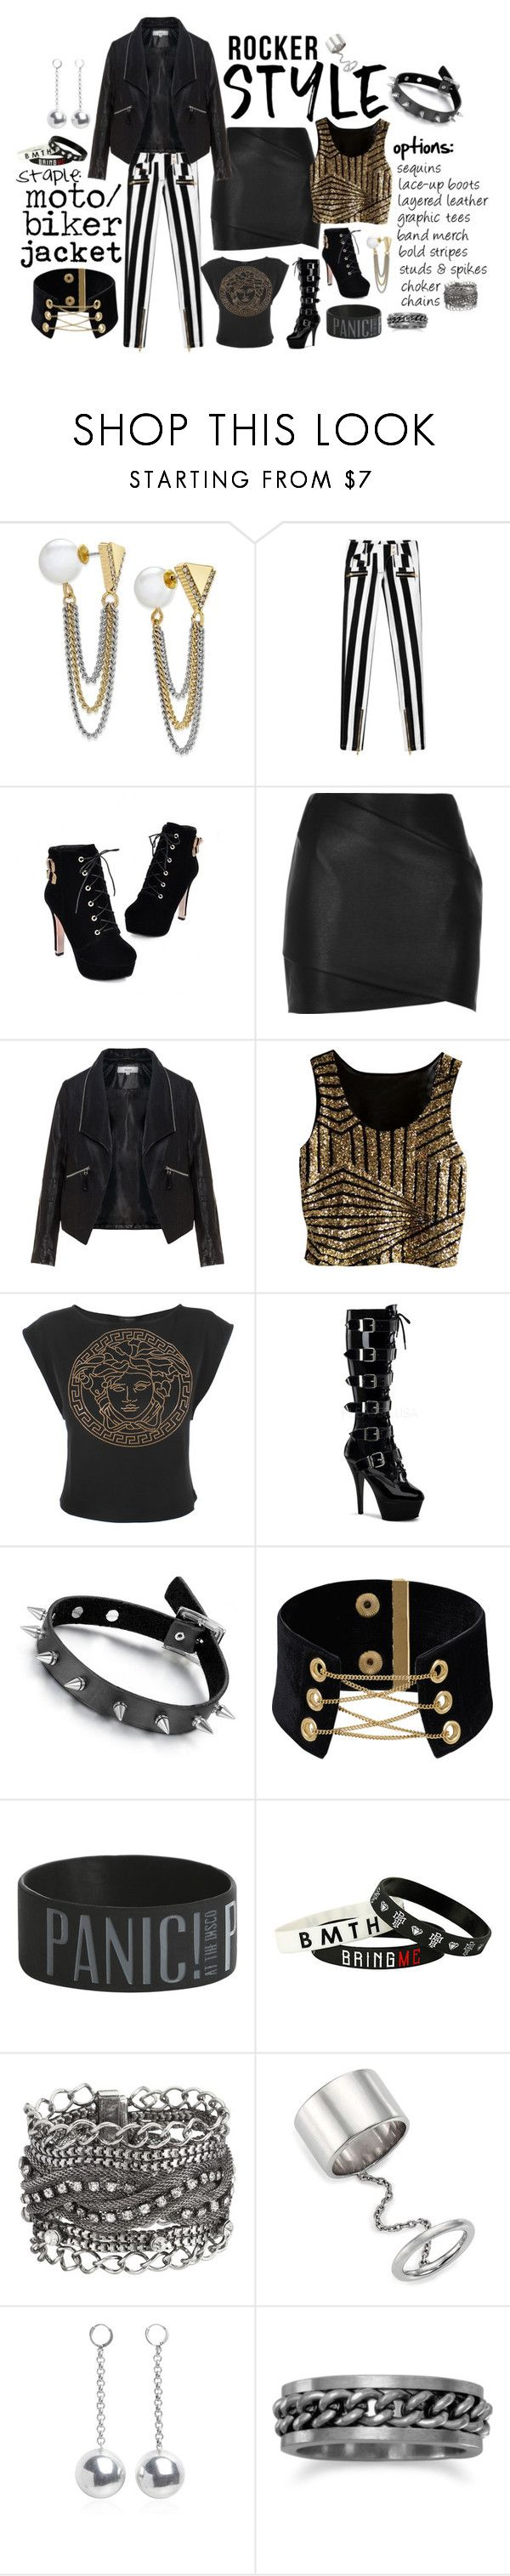 """""""Rocker Style: Moto/Biker Jacket Staple"""" by morningstar1399 ❤ liked on Polyvore featuring ABS by Allen Schwartz, Balmain, JY Shoes, River Island, Zizzi, Versace, Pleaser, maurices, Elizabeth and James and Isabel Marant"""